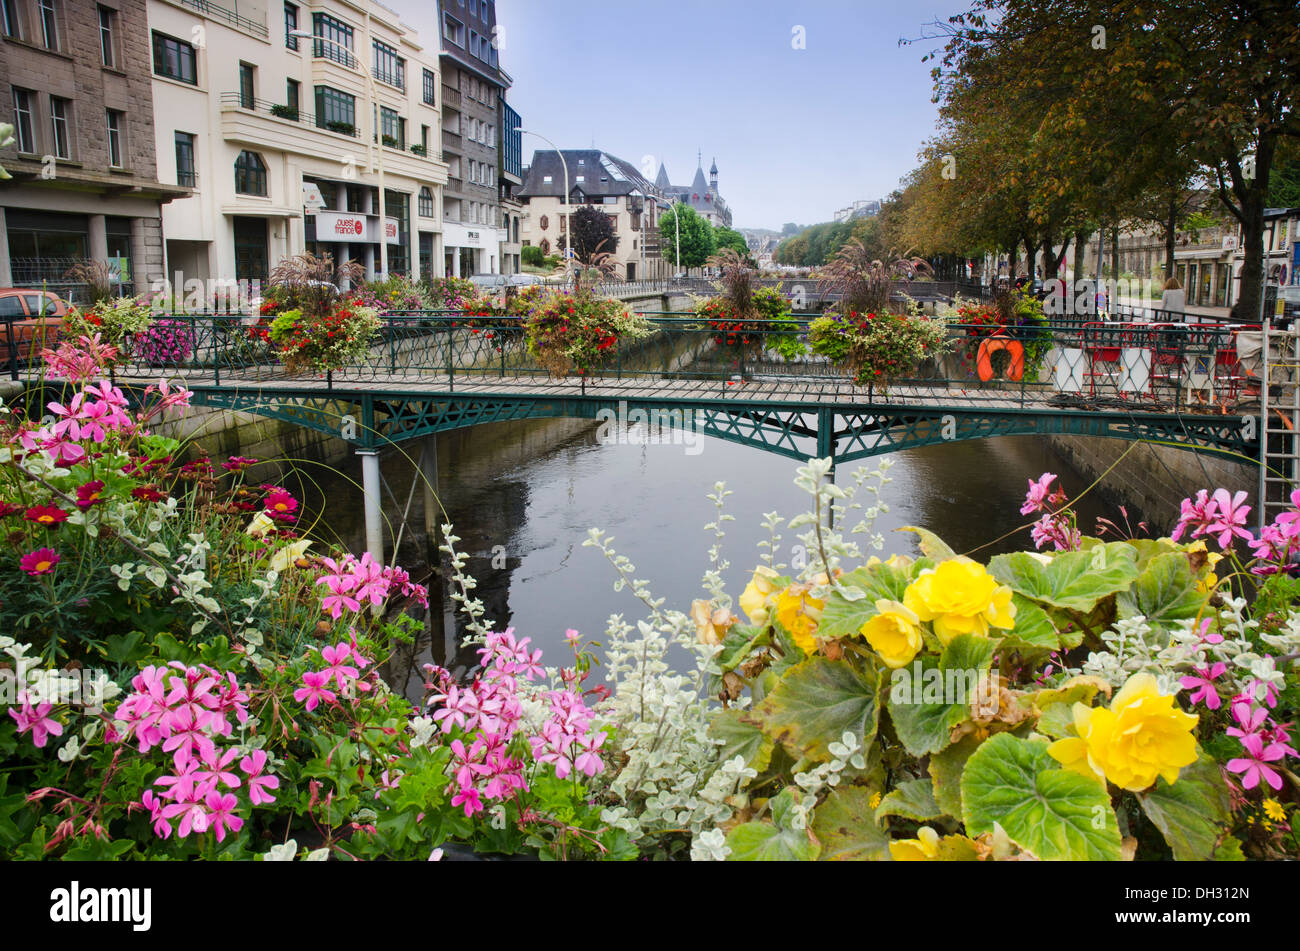 Flower displays on the bridges over the River Odet in Quimper, Brittany, France Stock Photo